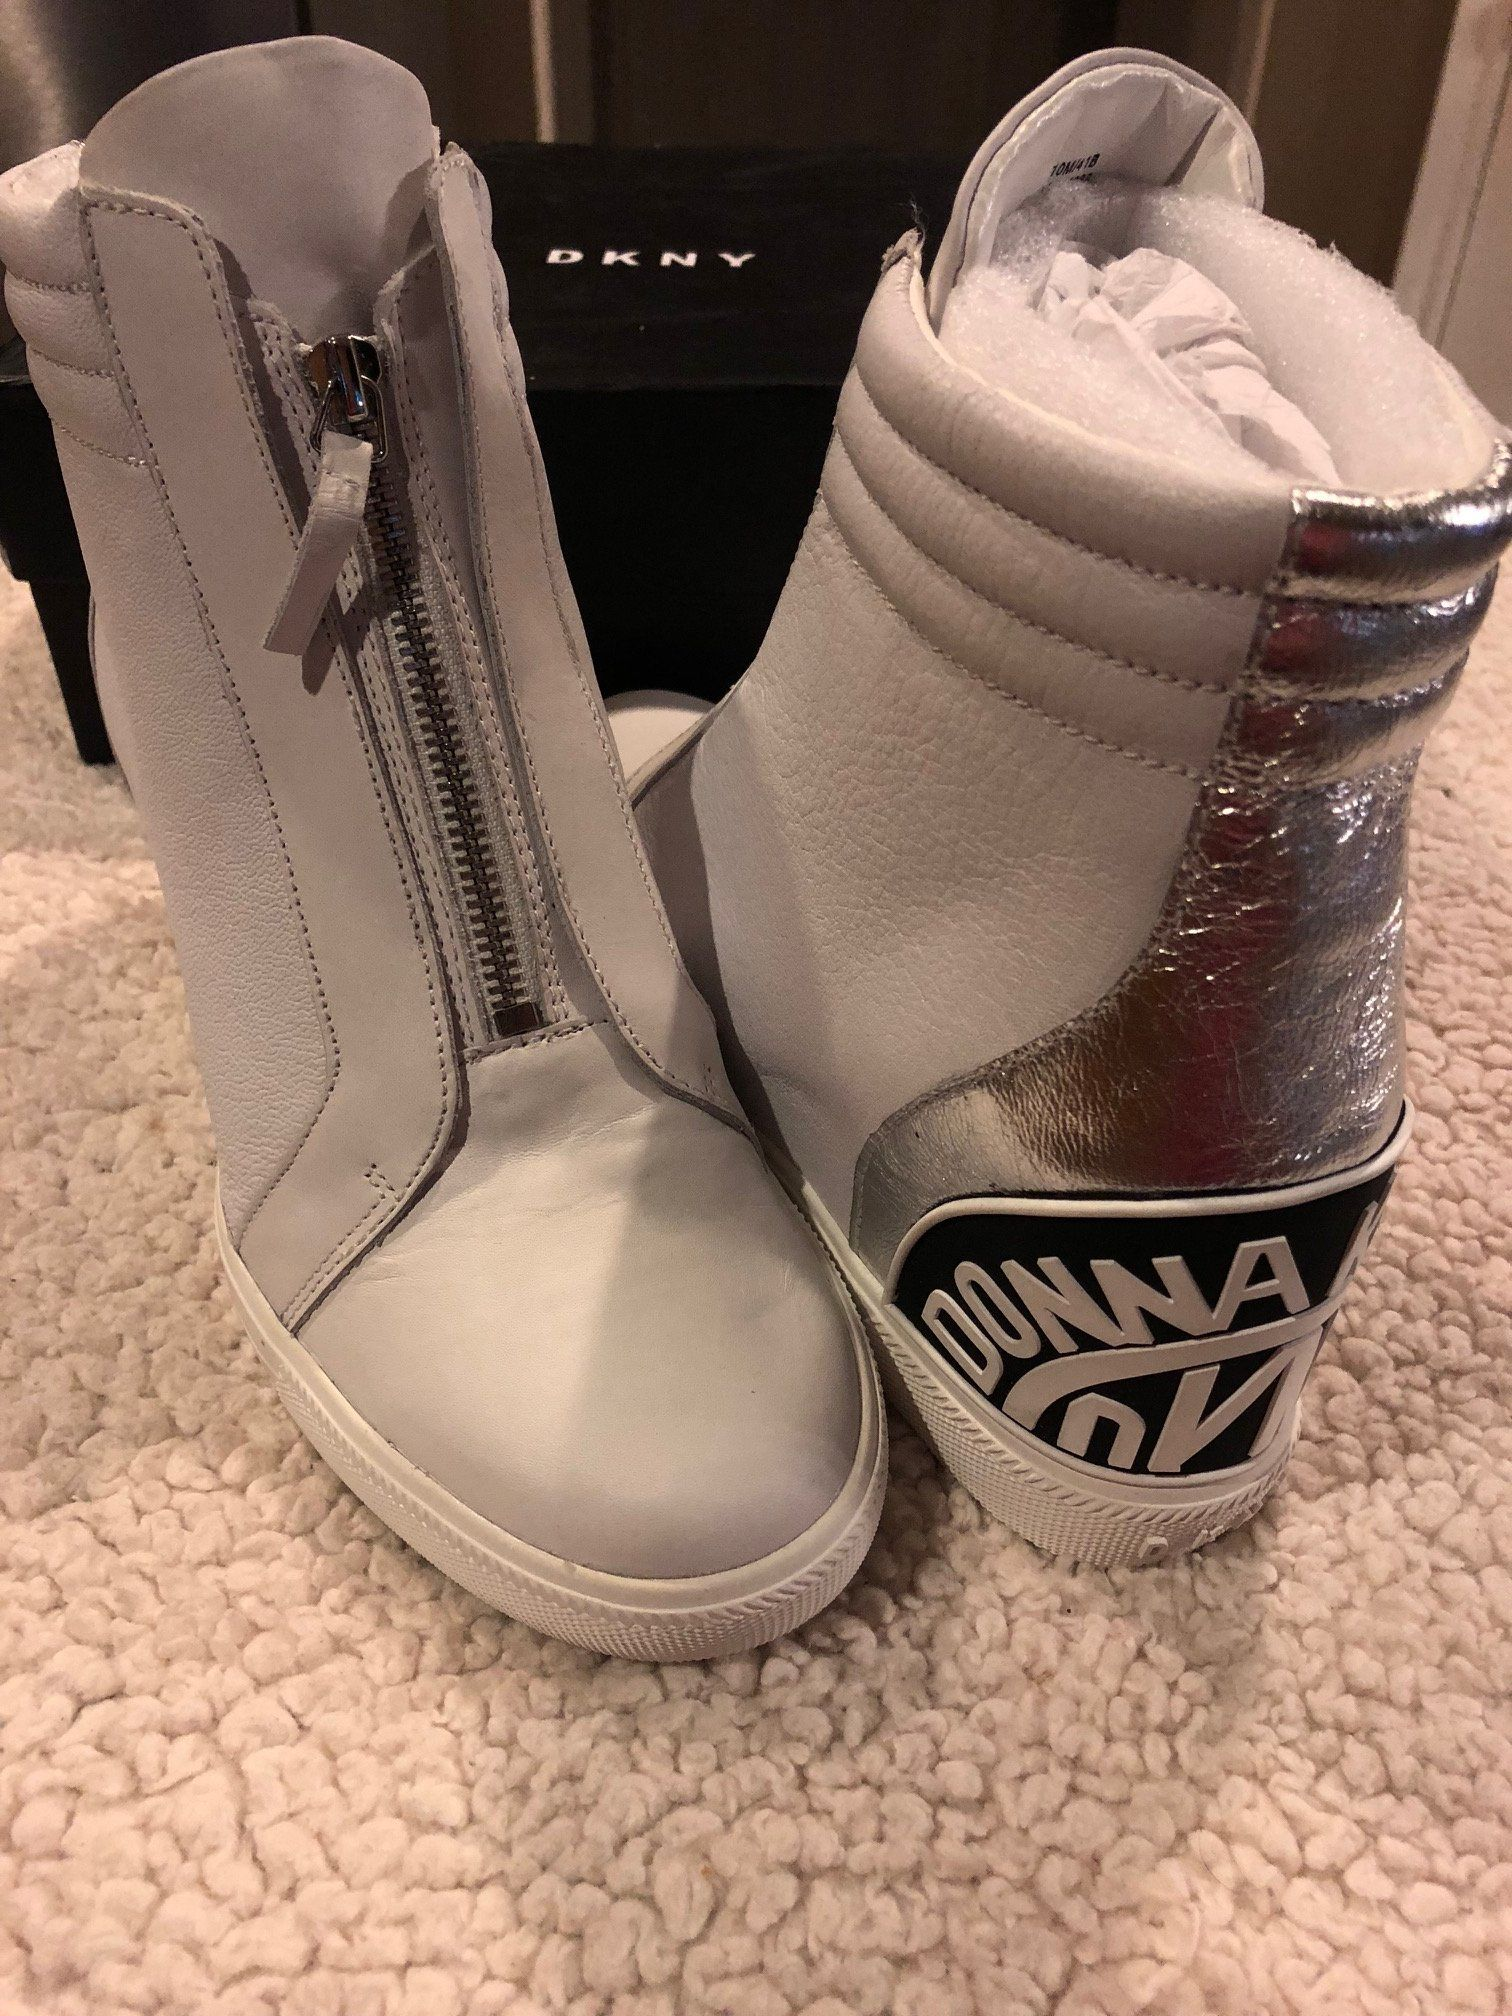 4edc9d3007 DKNY Connie Slip-On Wedge Sneakers | Products | Wedge sneakers, Ugg ...